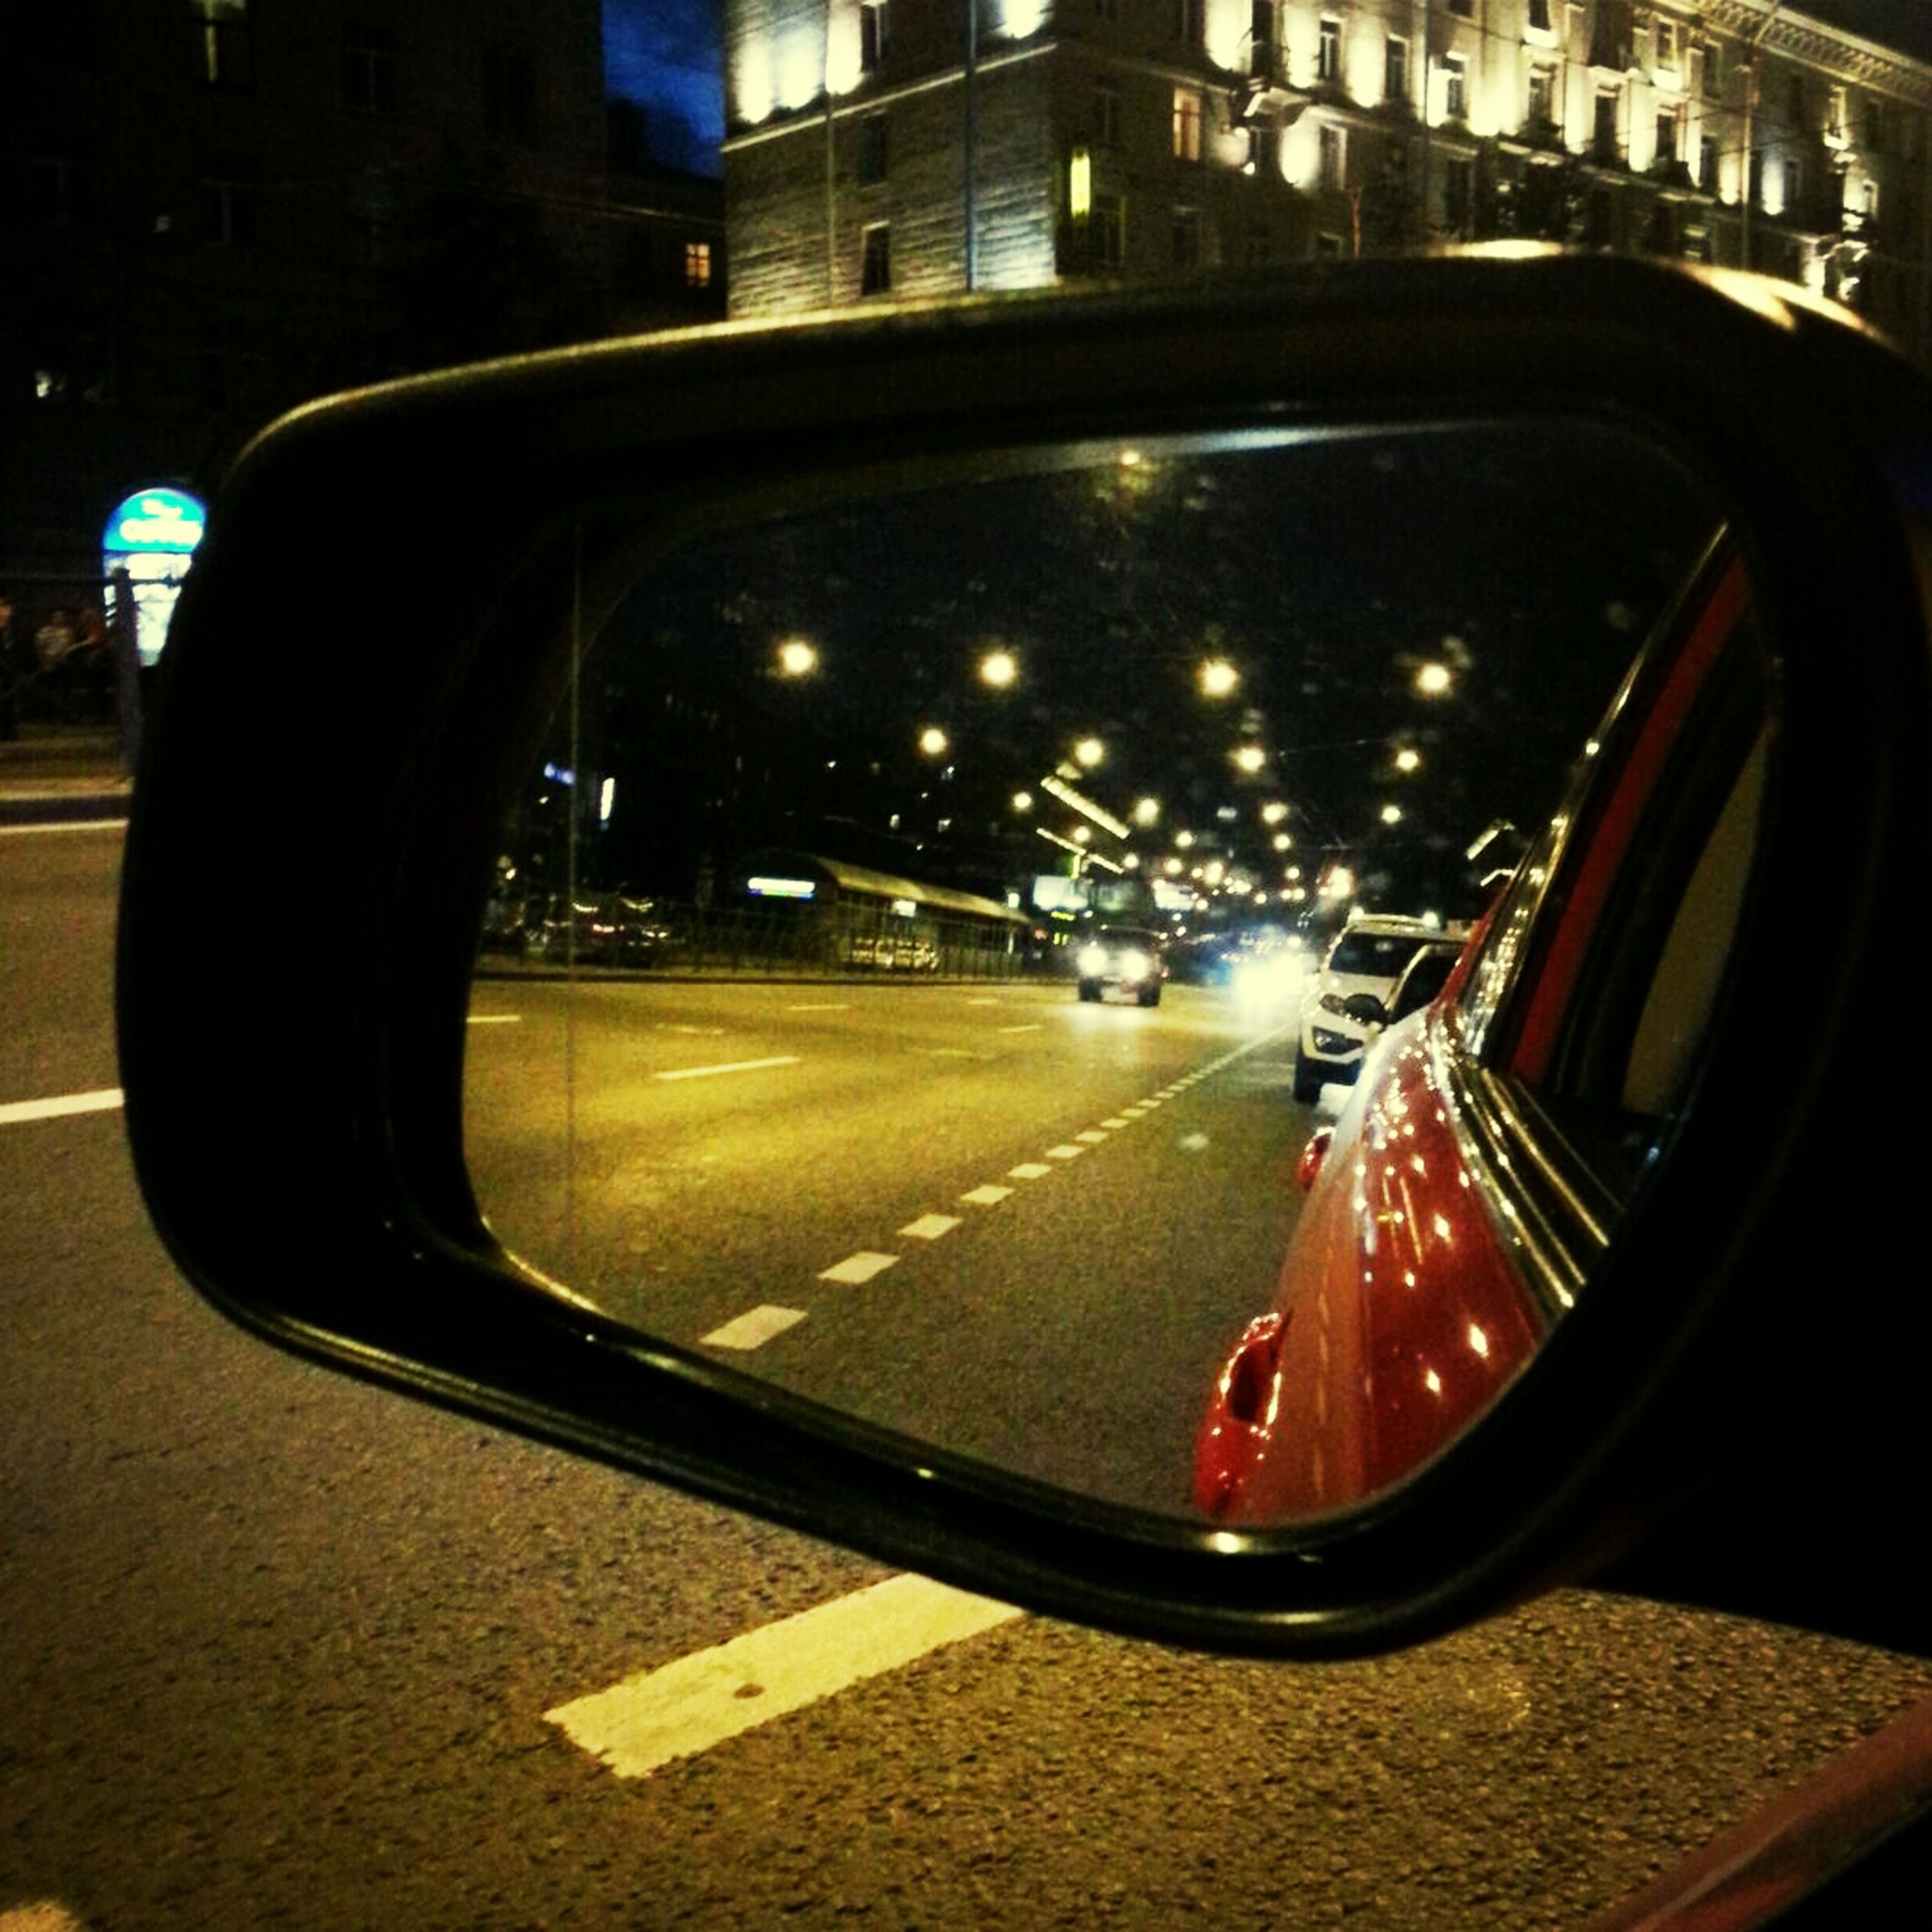 transportation, mode of transport, land vehicle, car, headlight, street, road, illuminated, city, night, travel, traffic, glass - material, side-view mirror, on the move, tail light, reflection, car interior, building exterior, vehicle interior